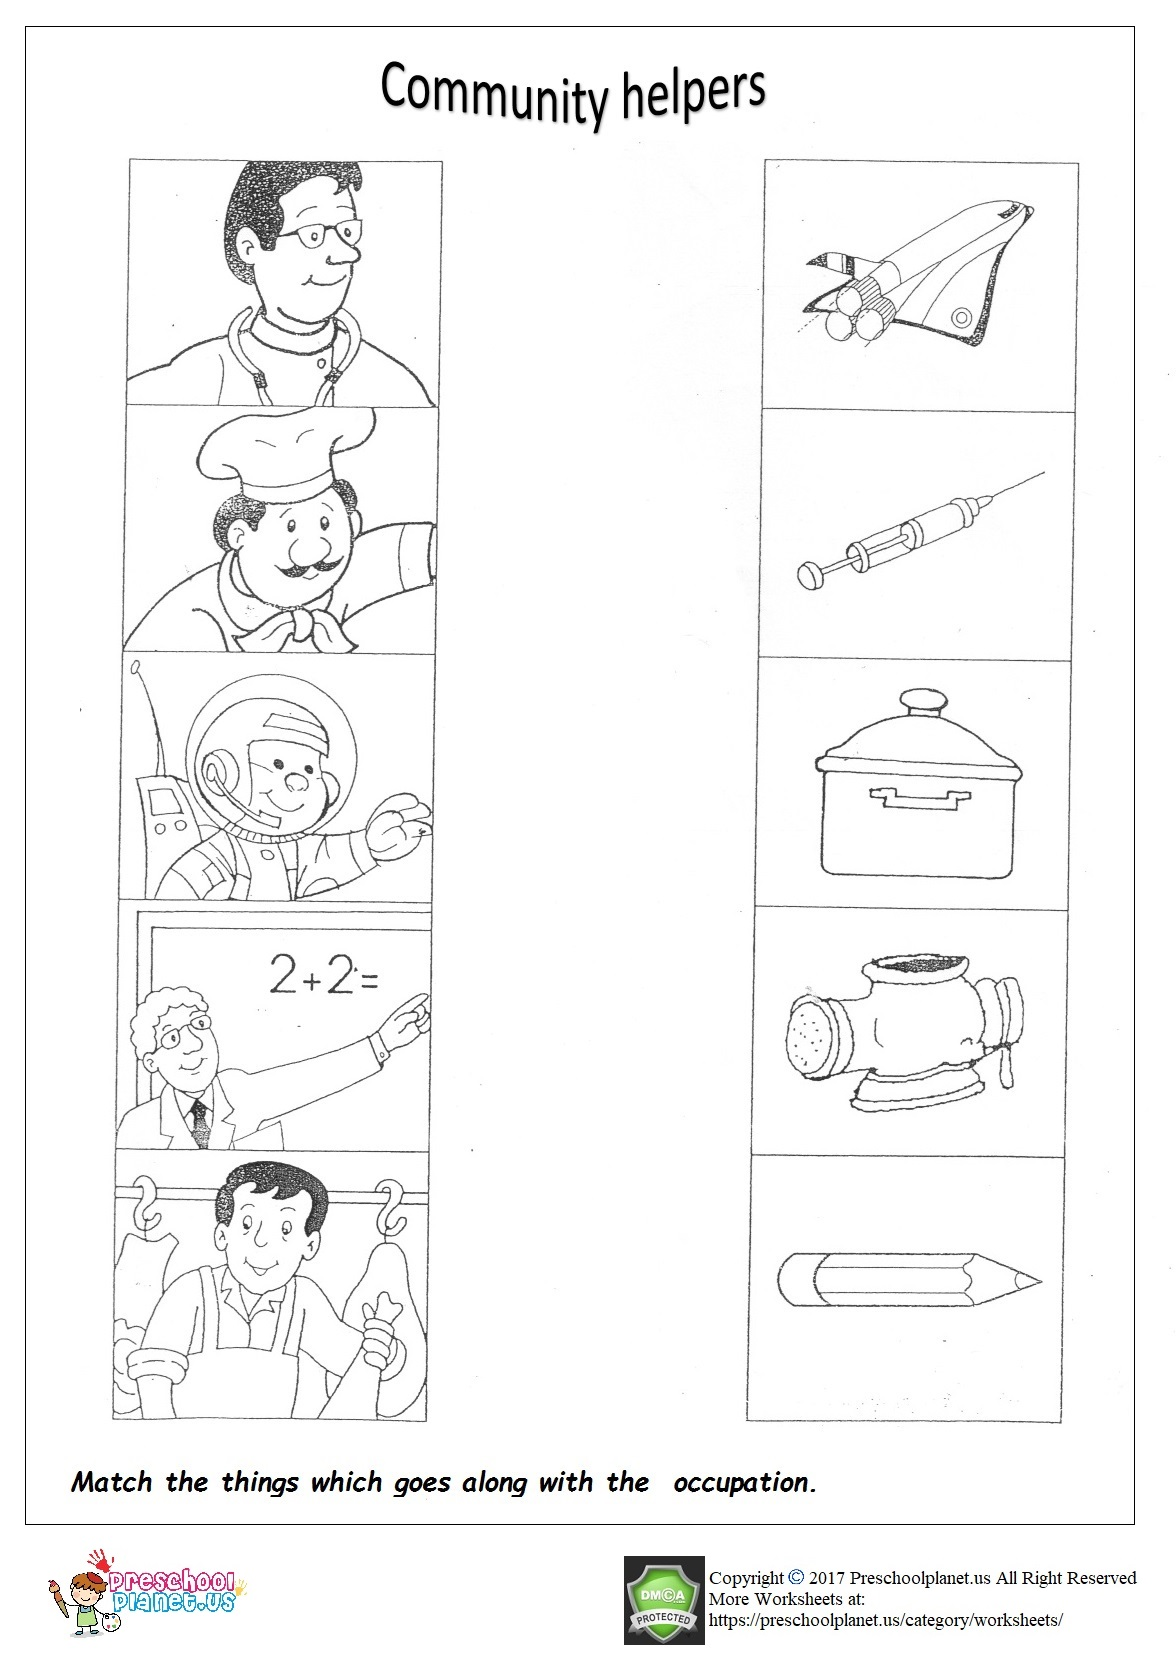 Community Helpers Worksheet For Kindergarten Preschoolplanet